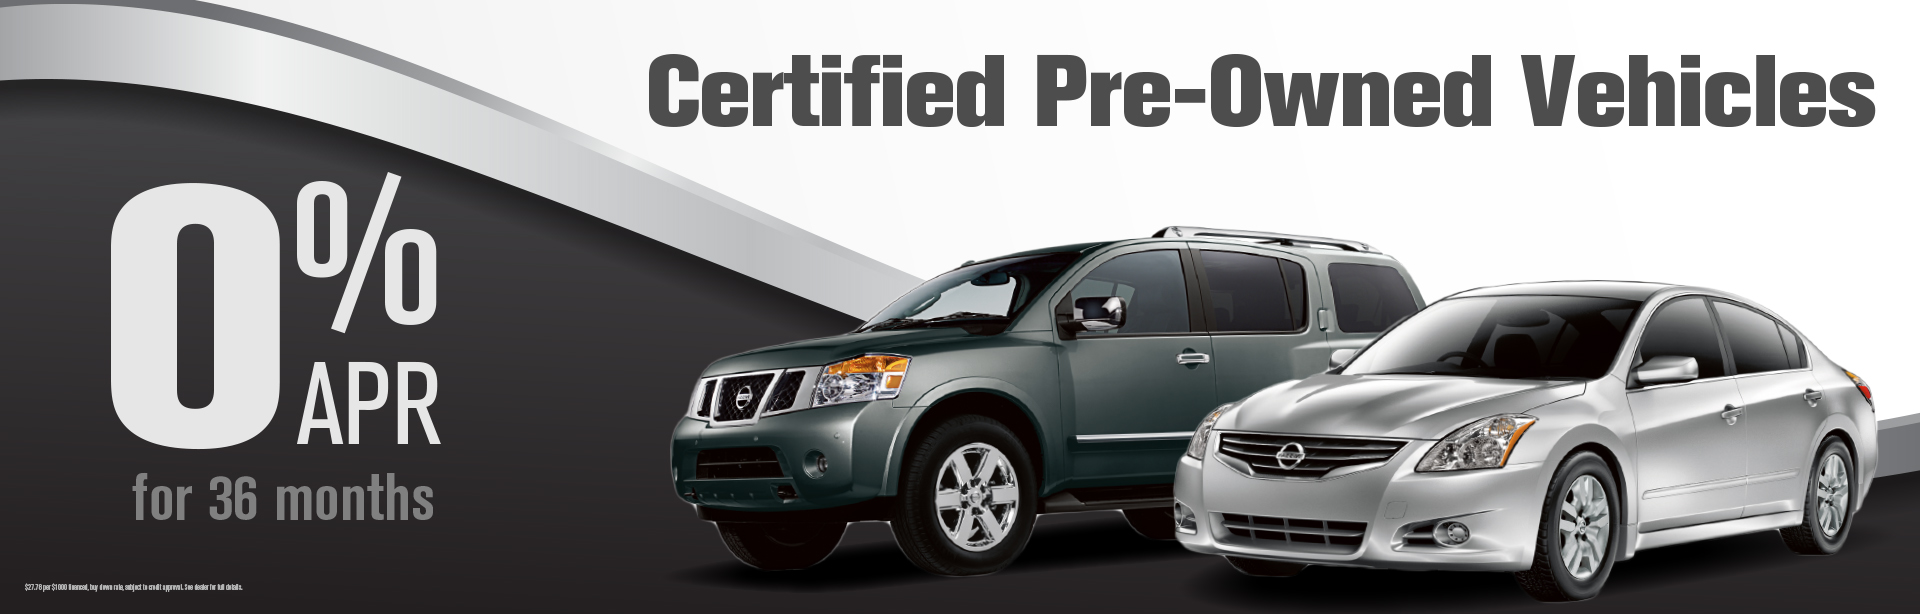 0% APR Certified Pre-Owned